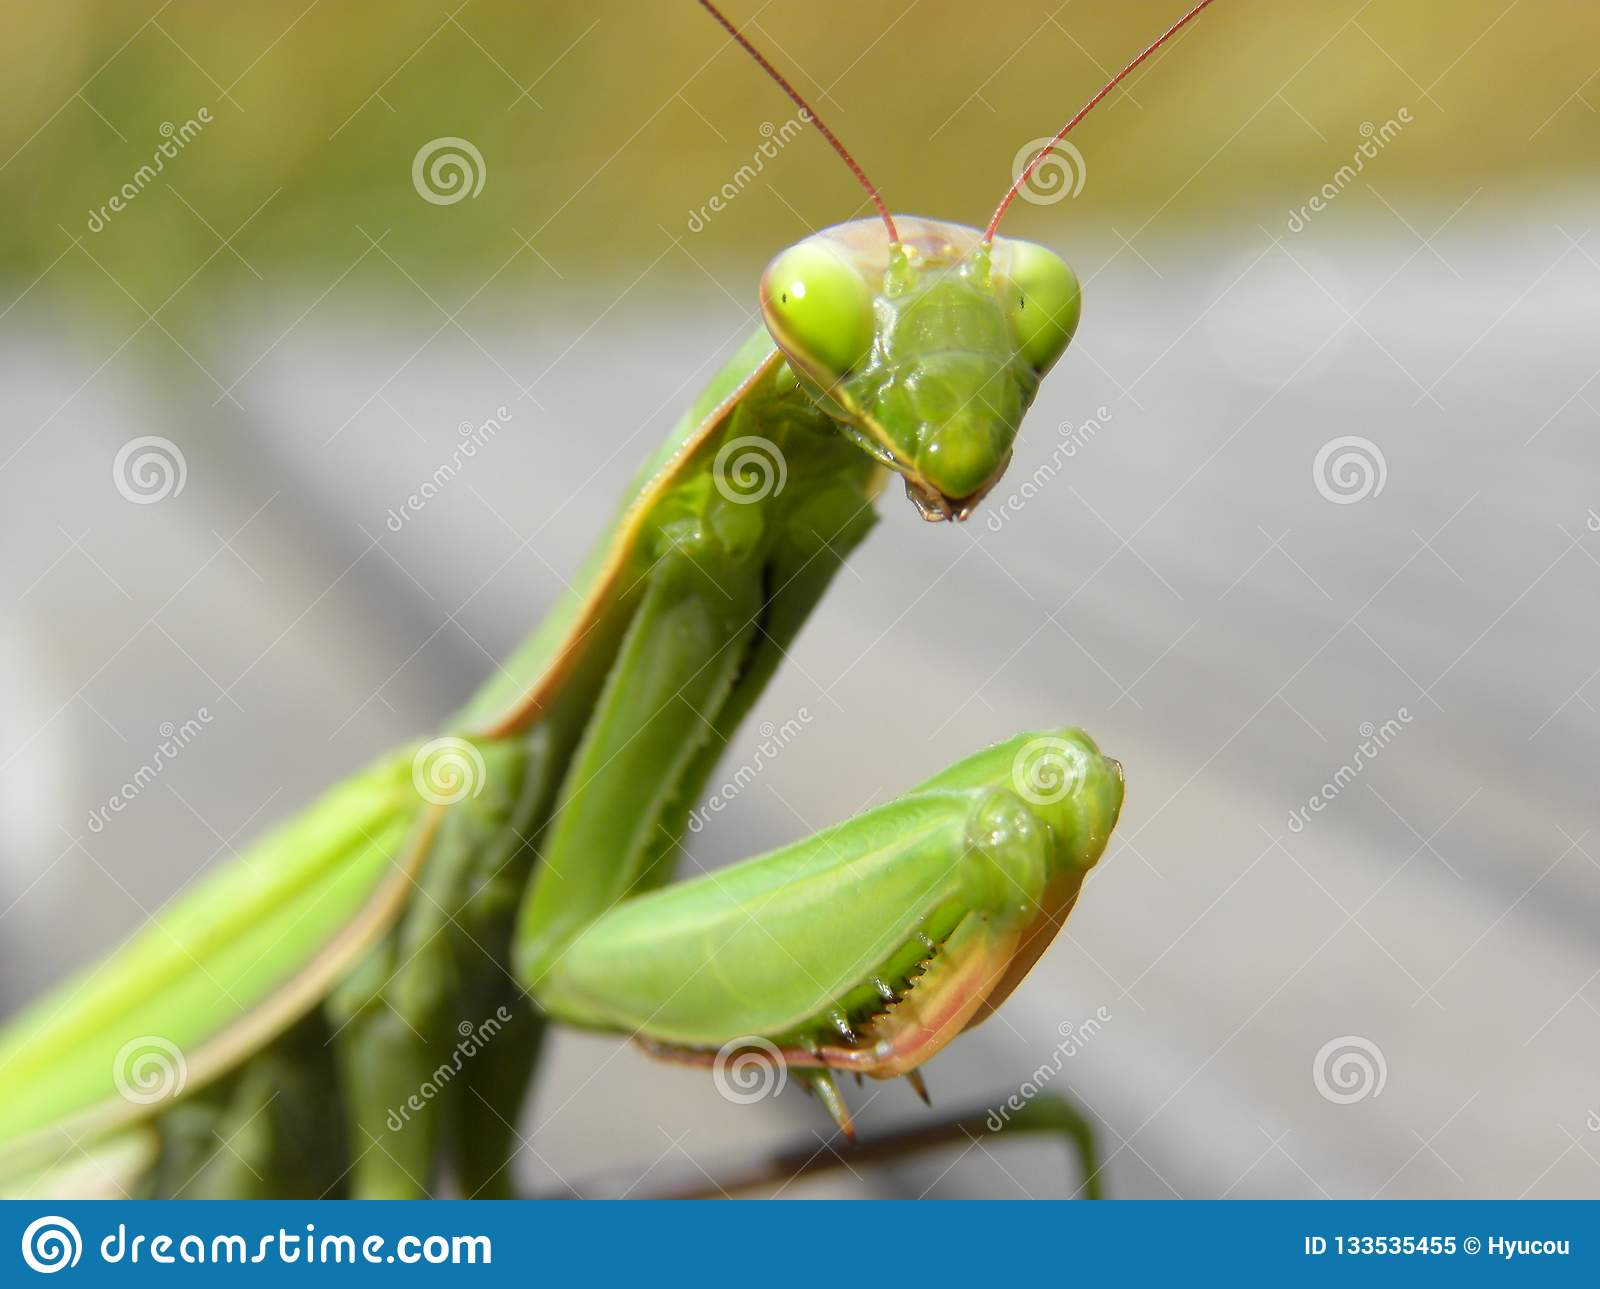 Praying mantis in herault, languedoc, france